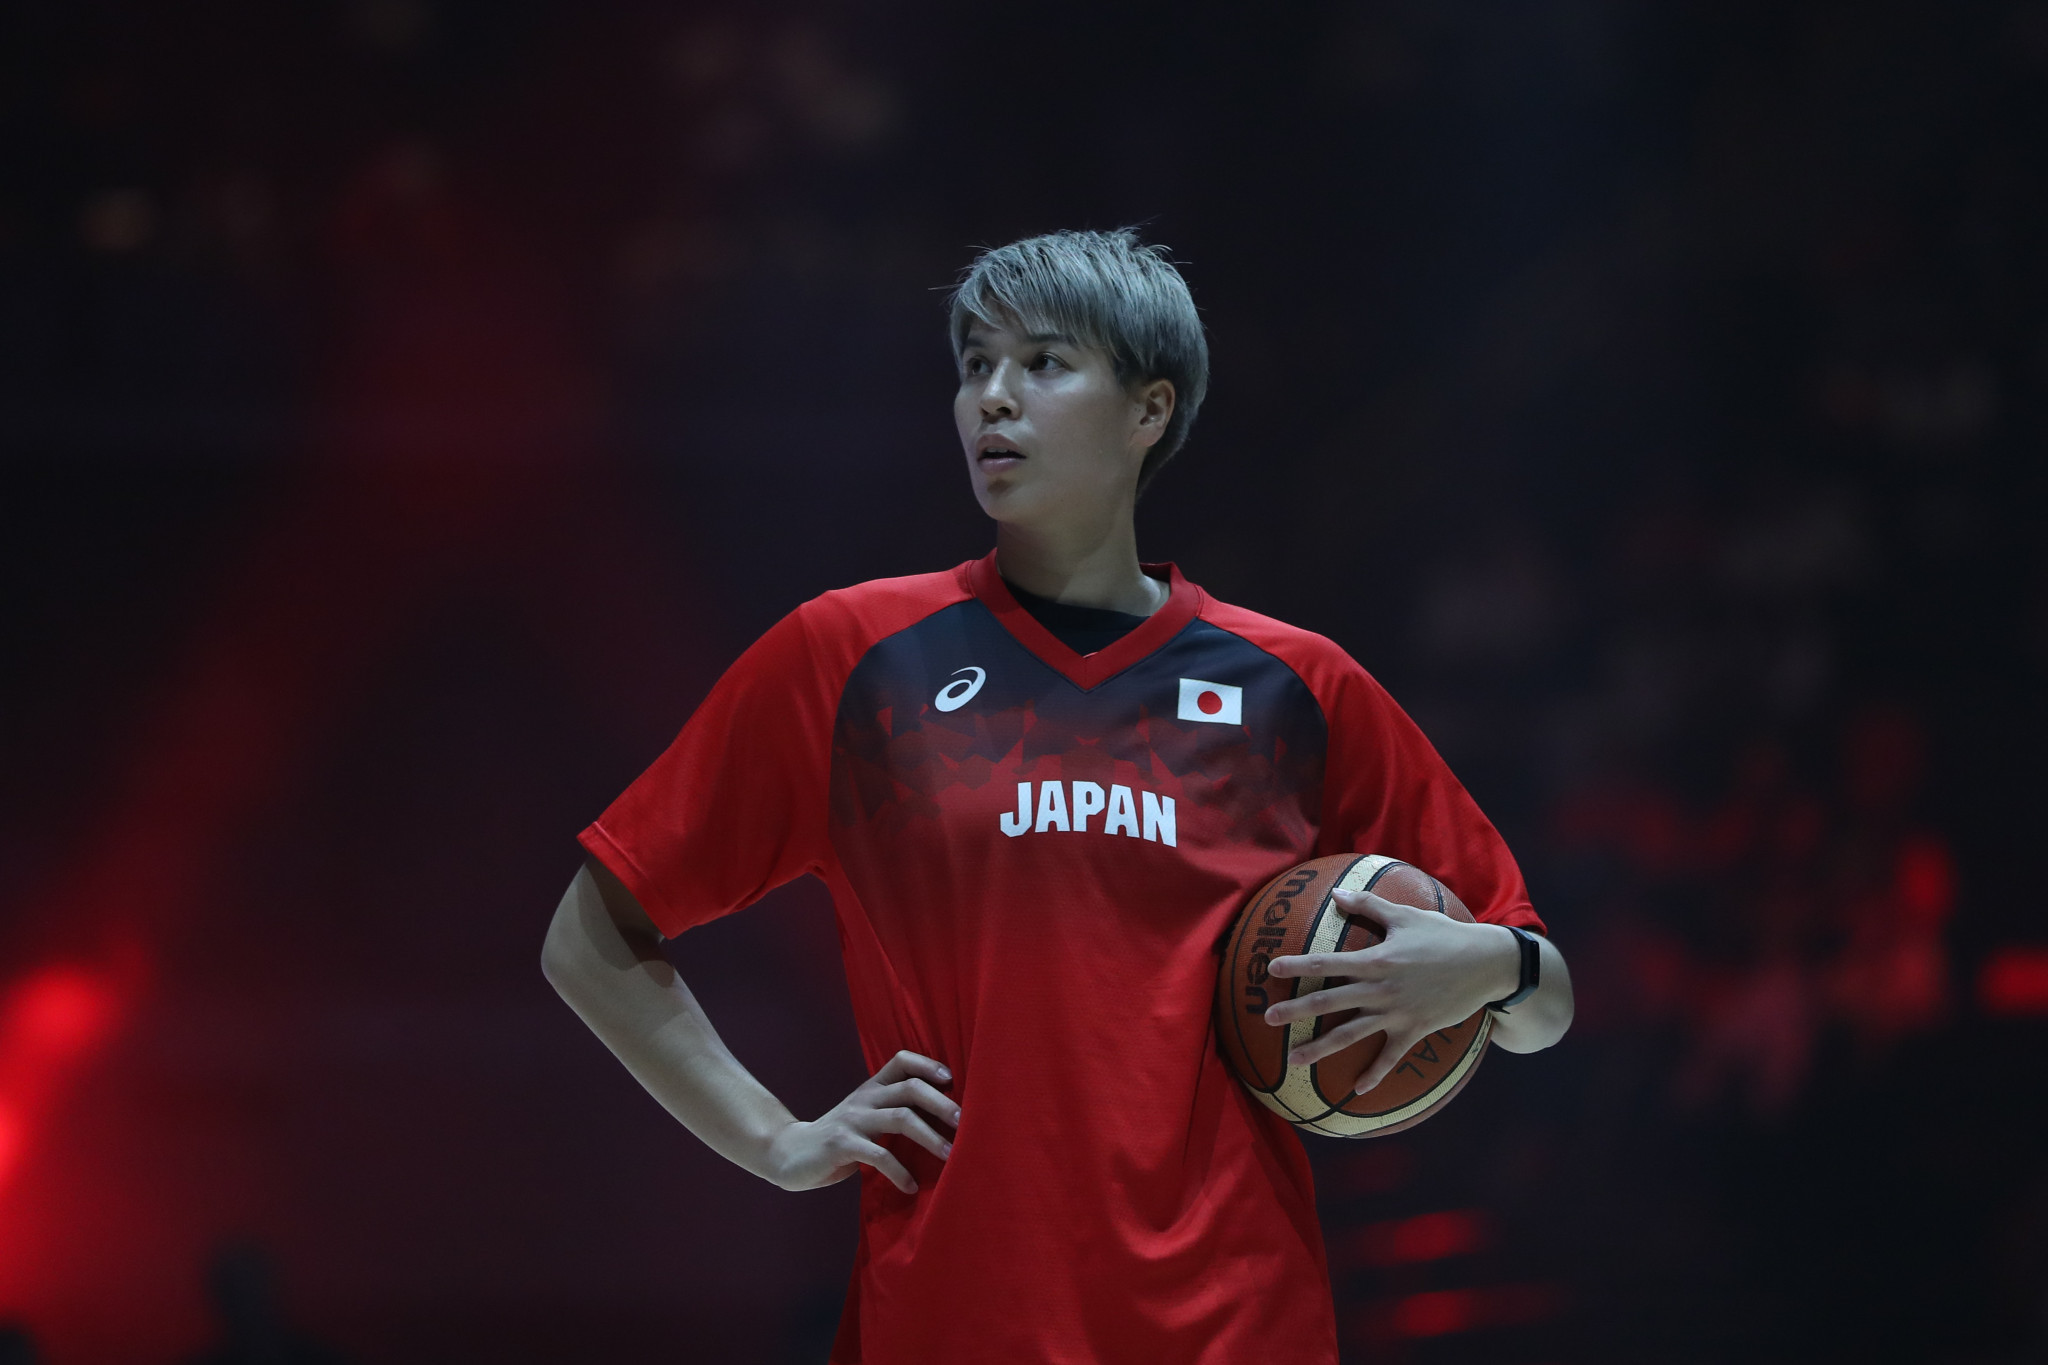 Japanese women's basketball team suffers blow to Tokyo 2020 medal hopes as Tokashiki tears ACL